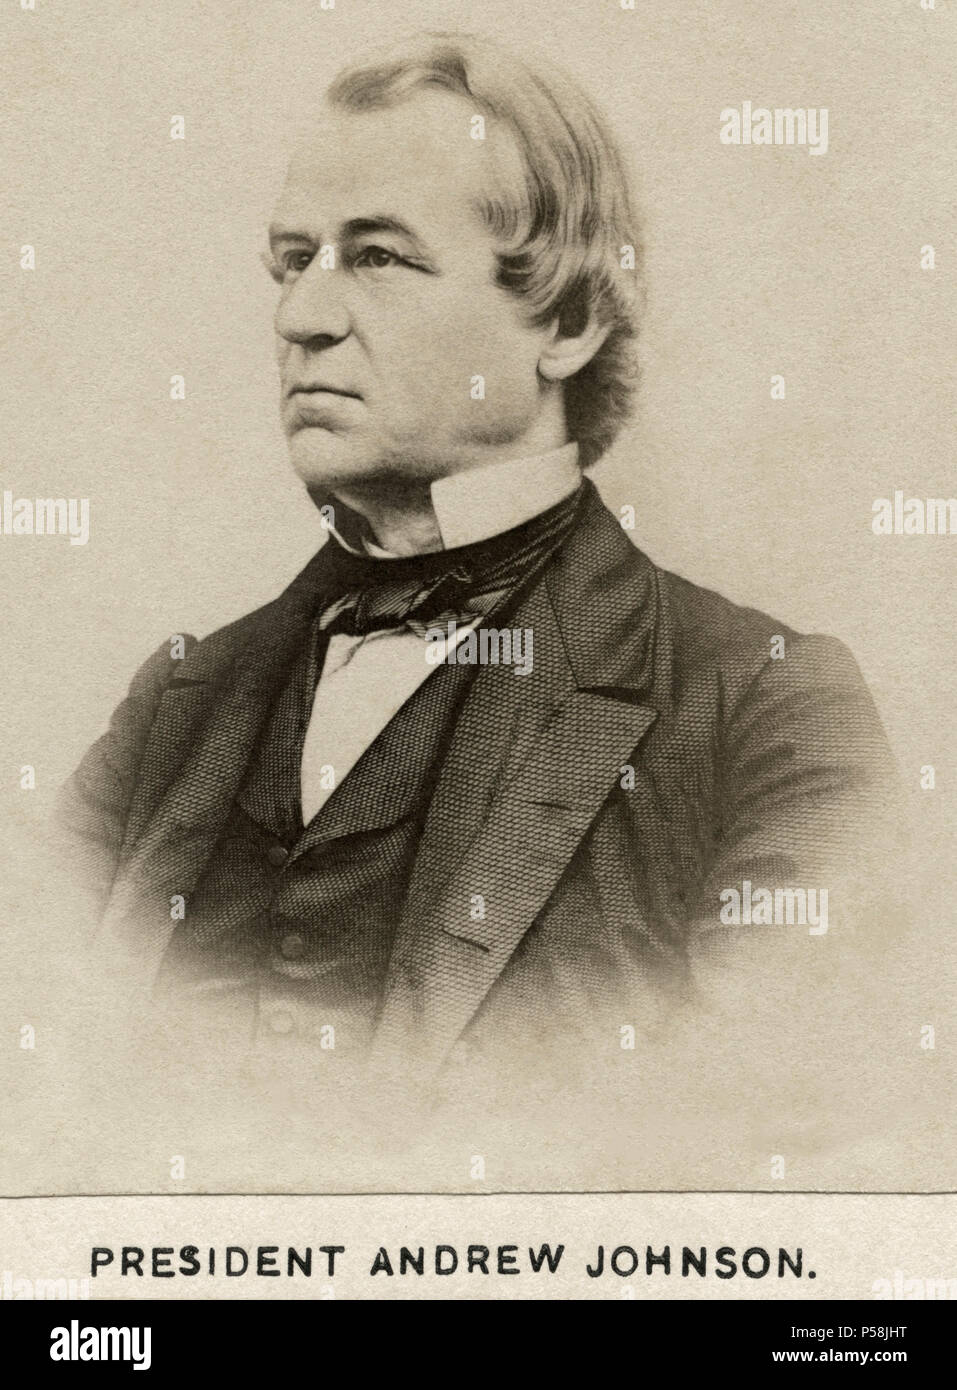 Andrew Johnson (1808-75), 17th President of the United States, Portrait, late 1860's - Stock Image